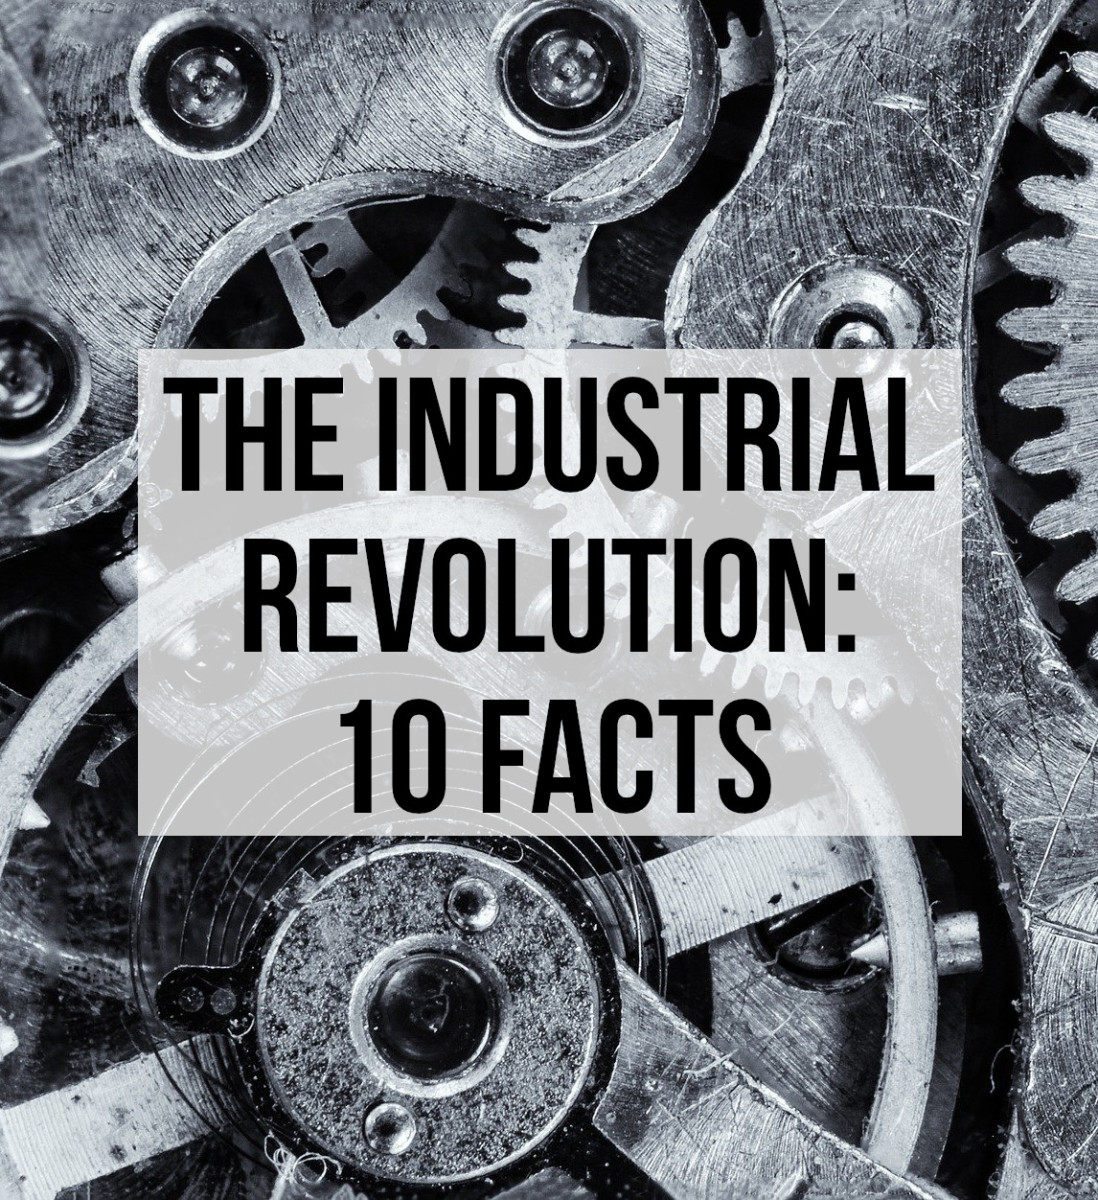 Here are 10 facts about the industrial revolution that will make you think.